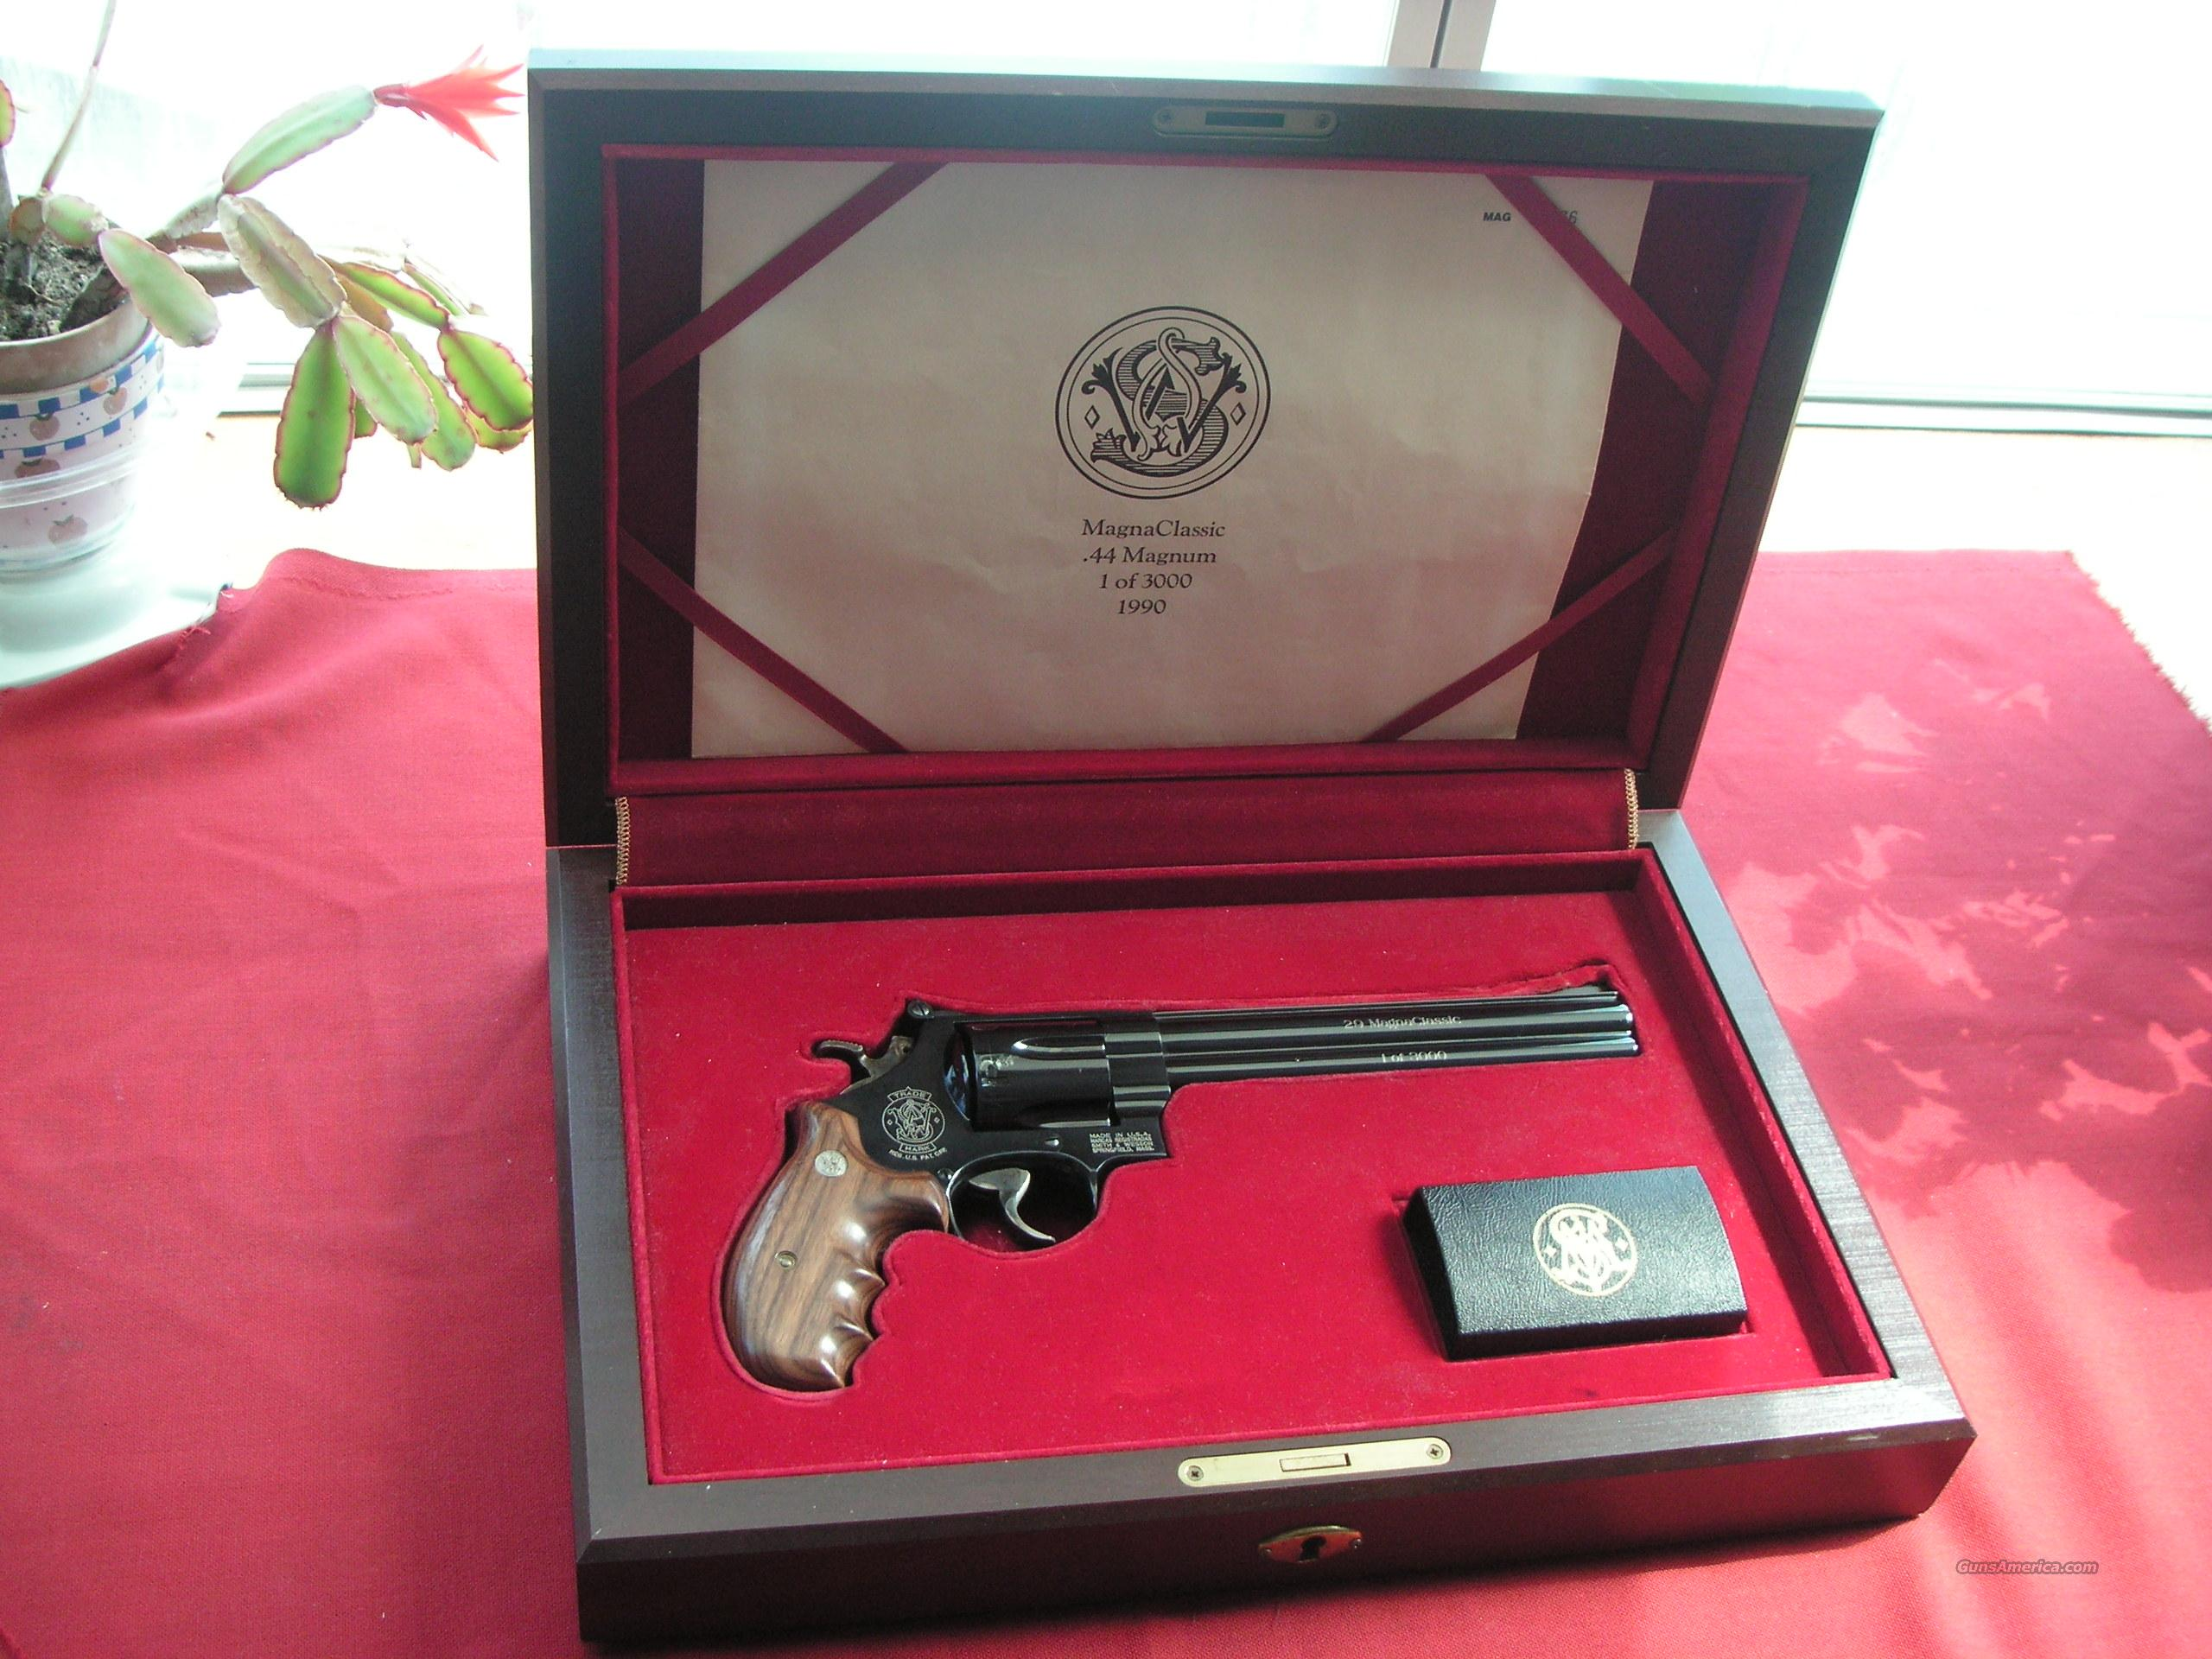 SMITH & WESSON MAGNE CLASSIC .44 MAGNUM 1 OF 3000  Guns > Pistols > Smith & Wesson Revolvers > Full Frame Revolver